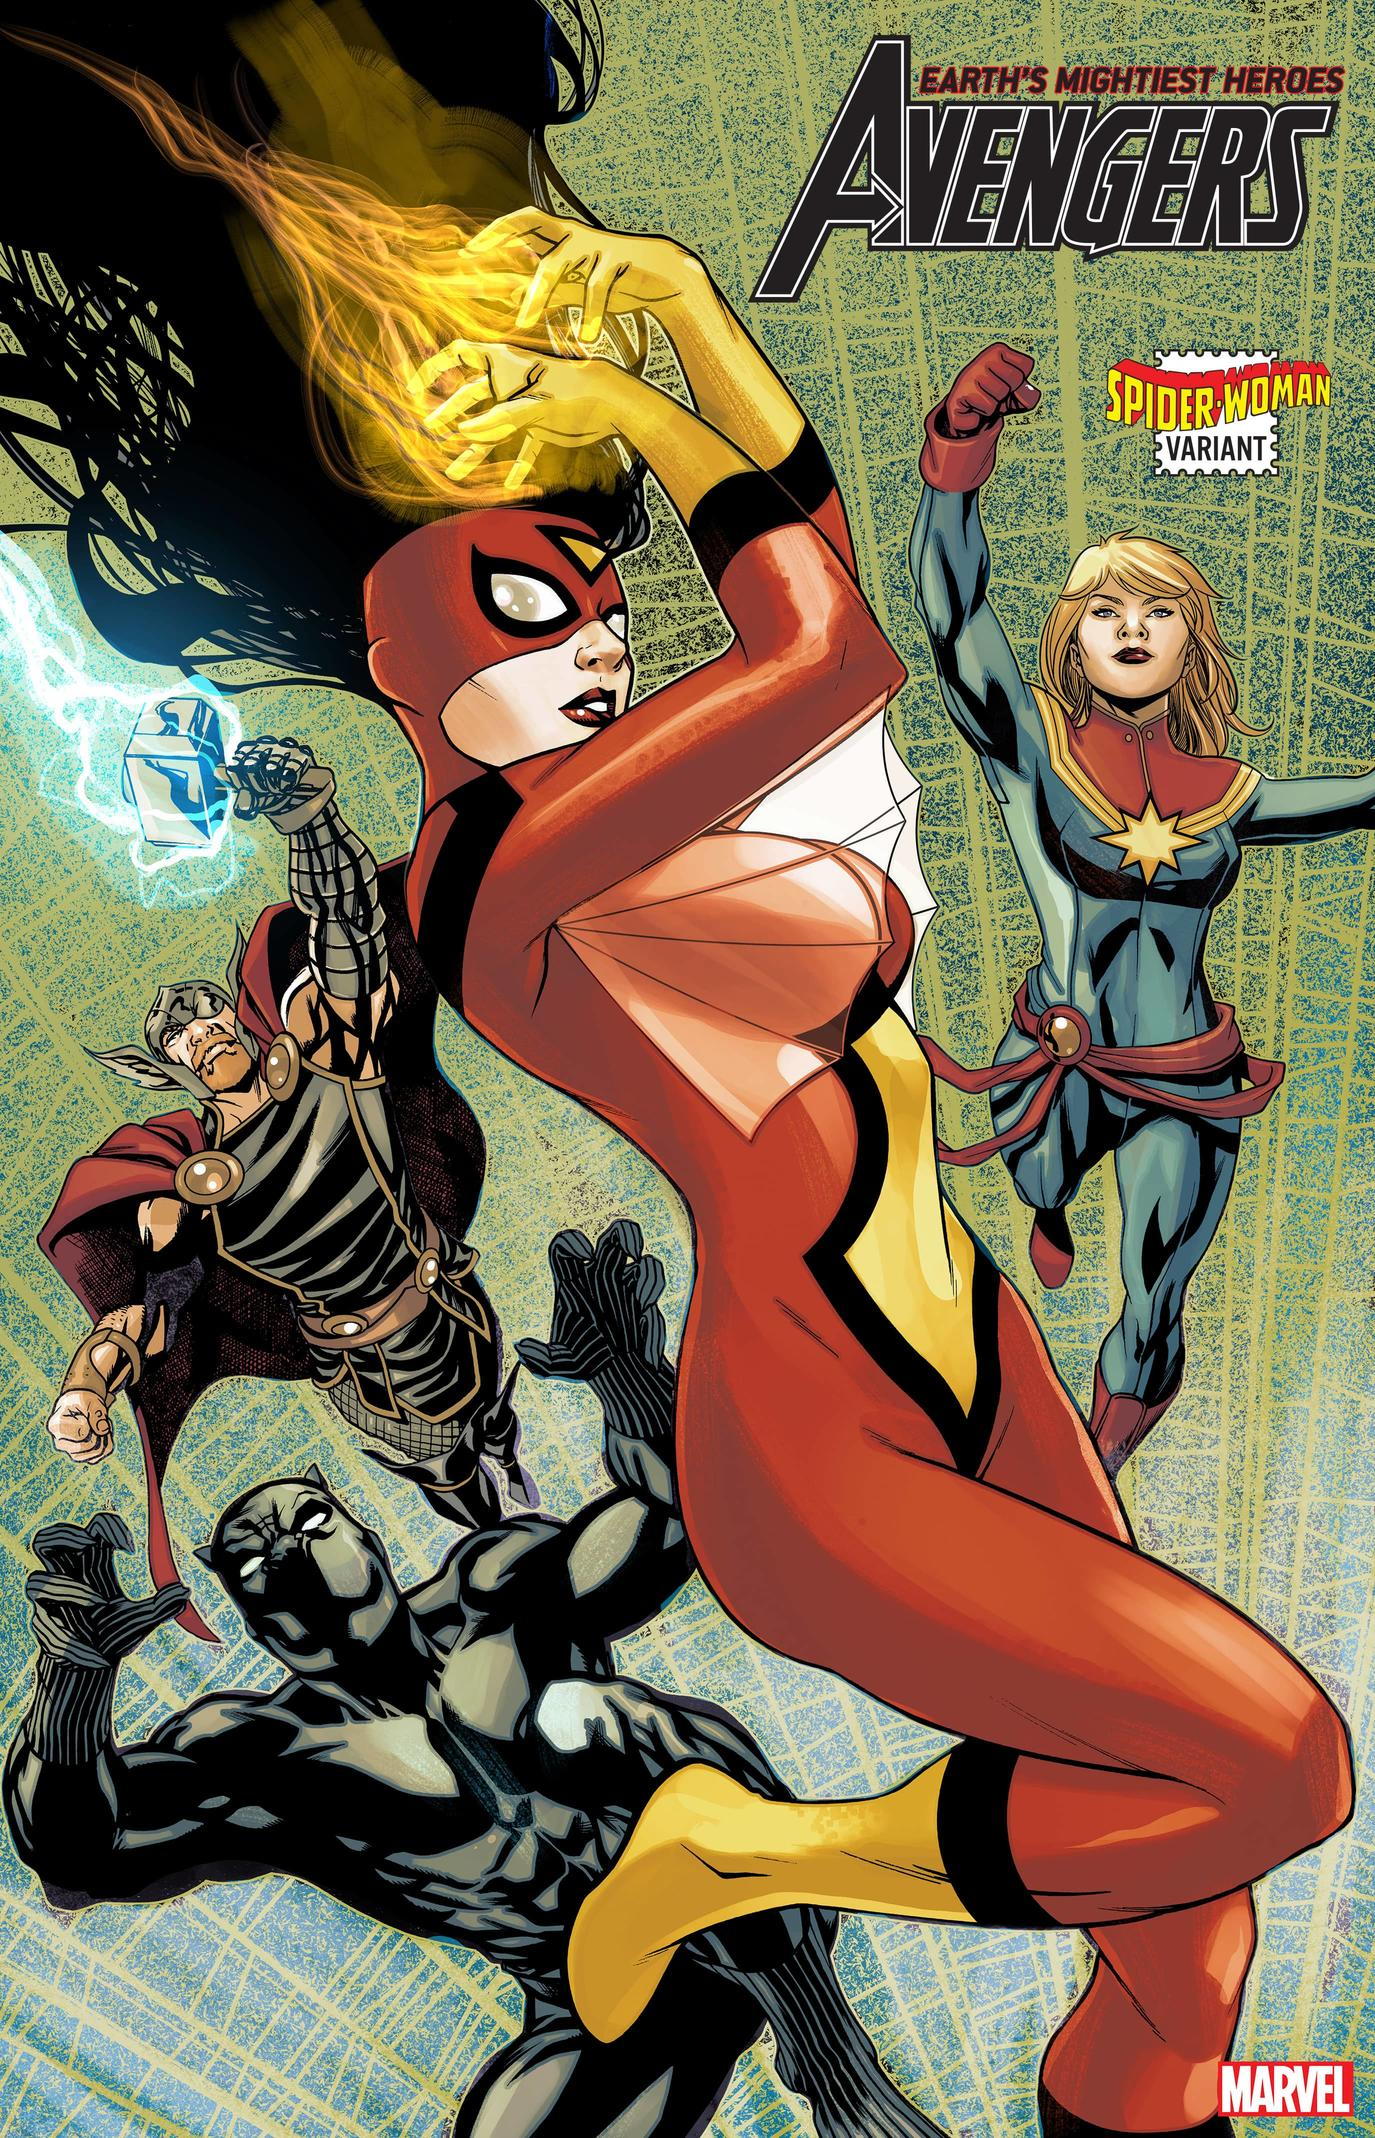 AVENGERS #32 SPIDER-WOMAN VARIANT by MIKE McKONE with colors by ANDRES MOSSA